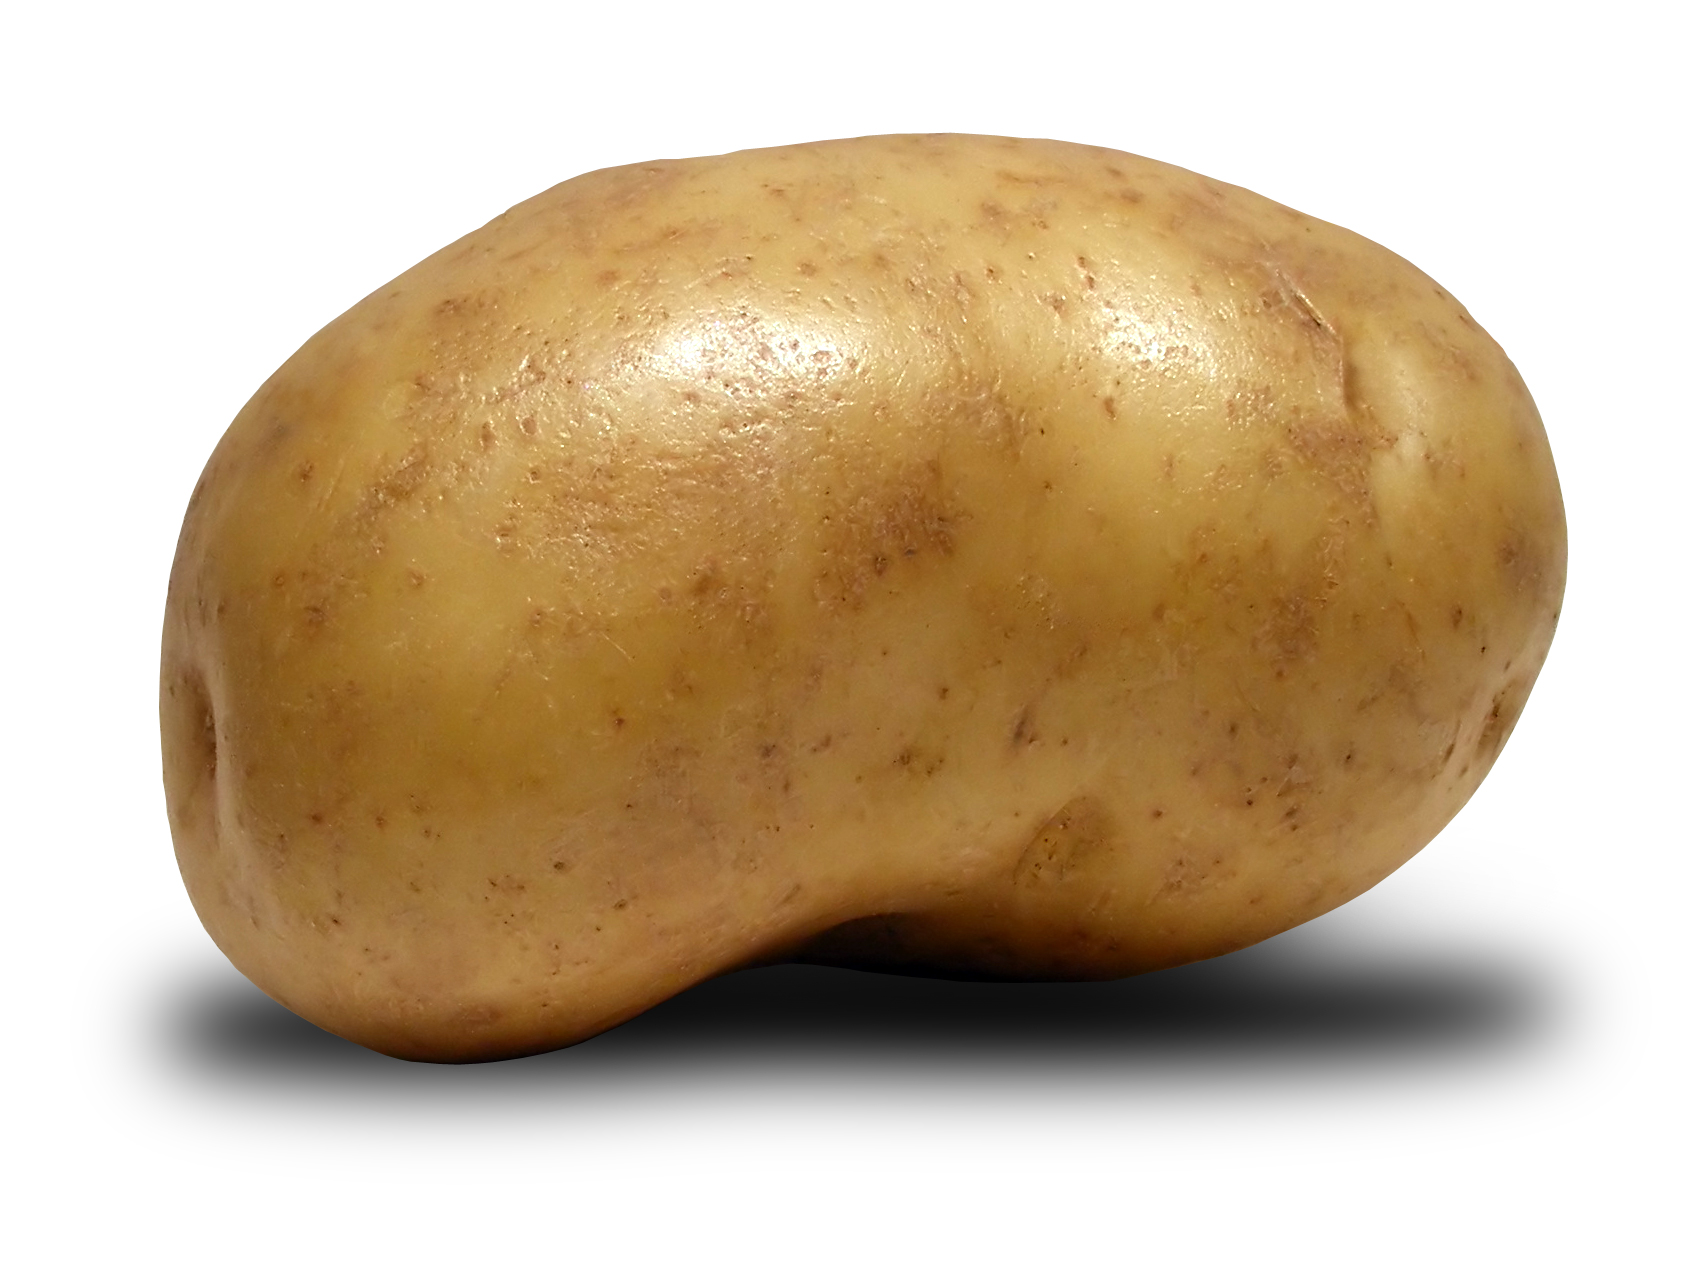 Ruminations on diversity and potatoes ritter 39 s ruminations ramblings - What to do with potatoes ...